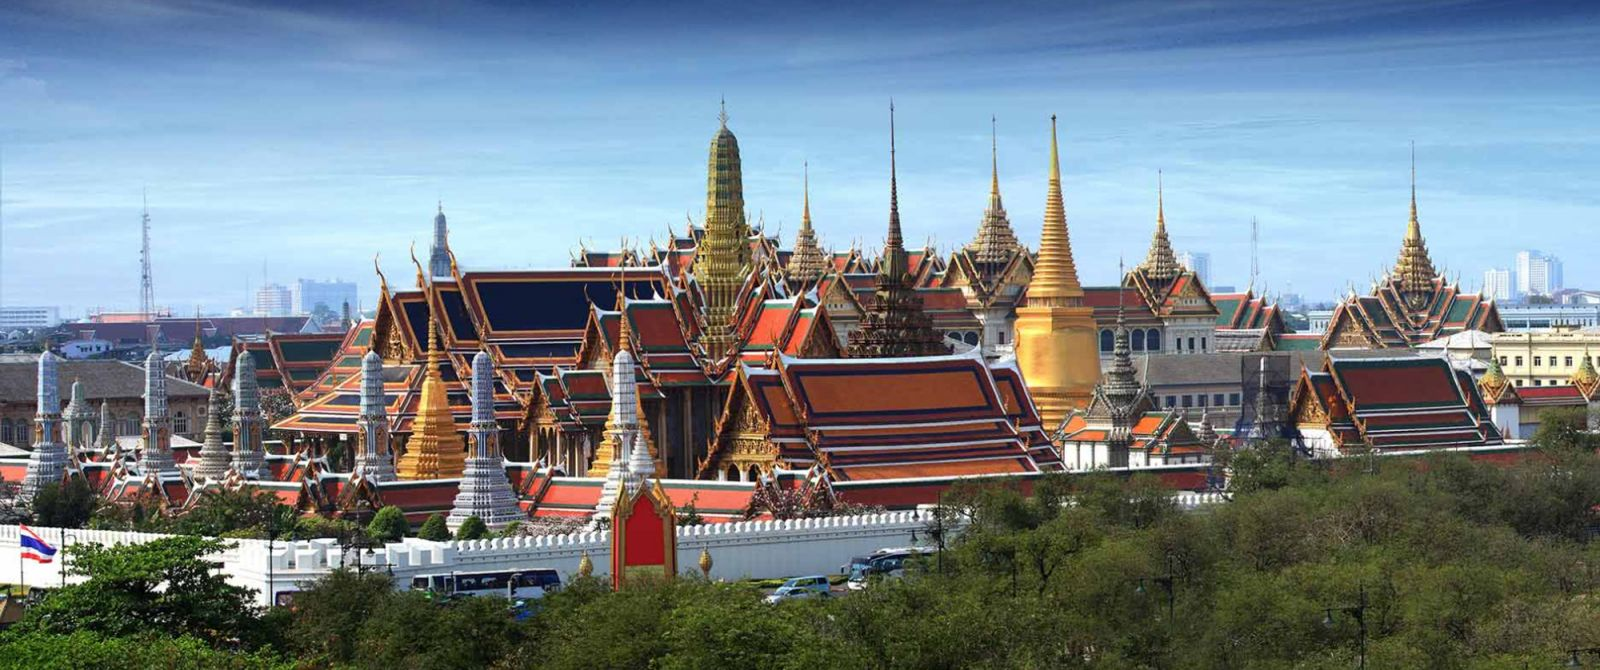 15 Day Heritages Of Thailand, Laos And Cambodia